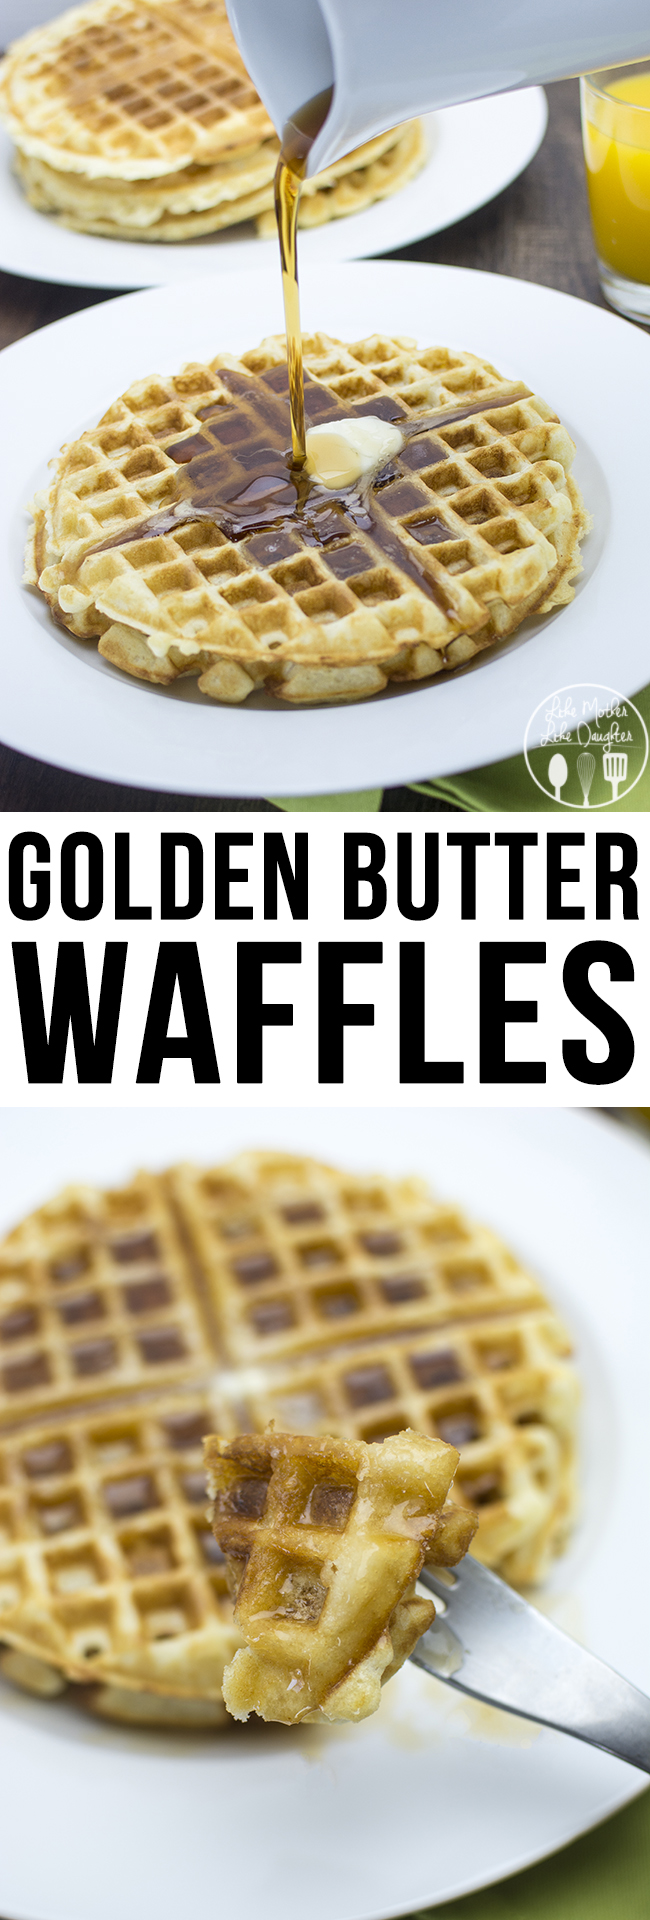 Golden Butter Waffles - These are the perfect waffles, crispy on the edges soft in the middle. So great for breakfast, brunch or brinner.